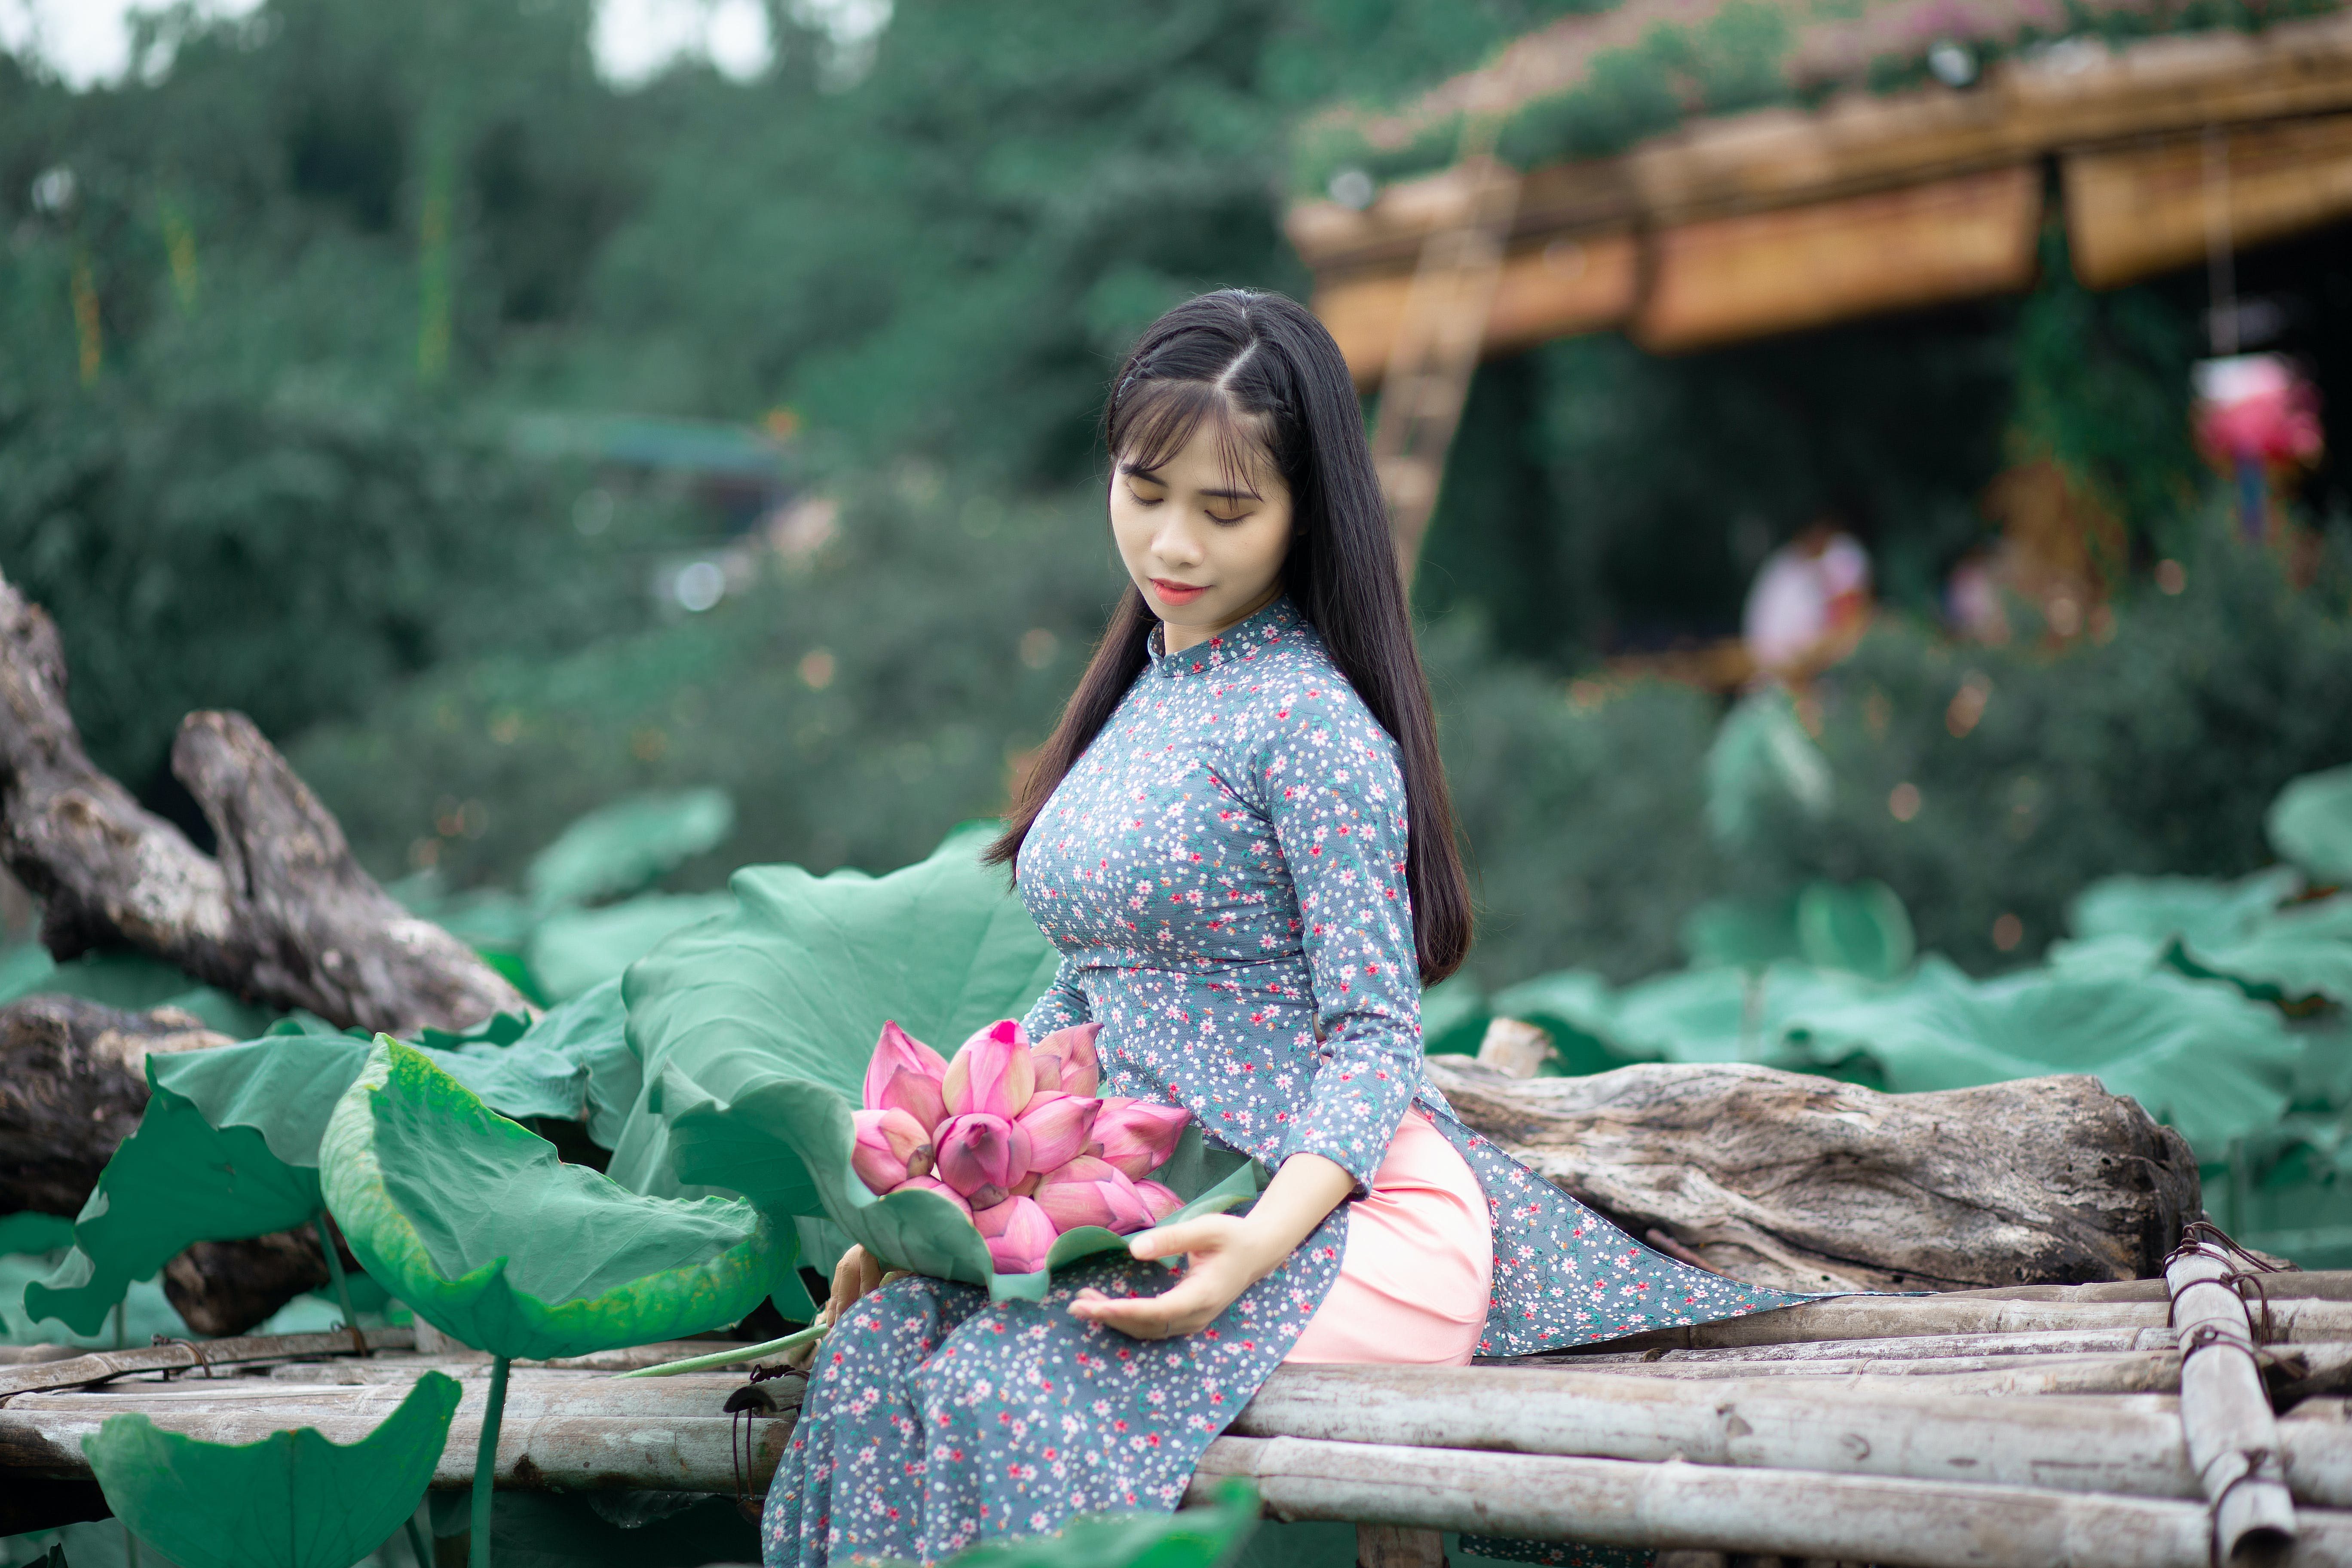 Woman Sitting on Bamboo Bench With Bouquet of Pink Flowers on Laps